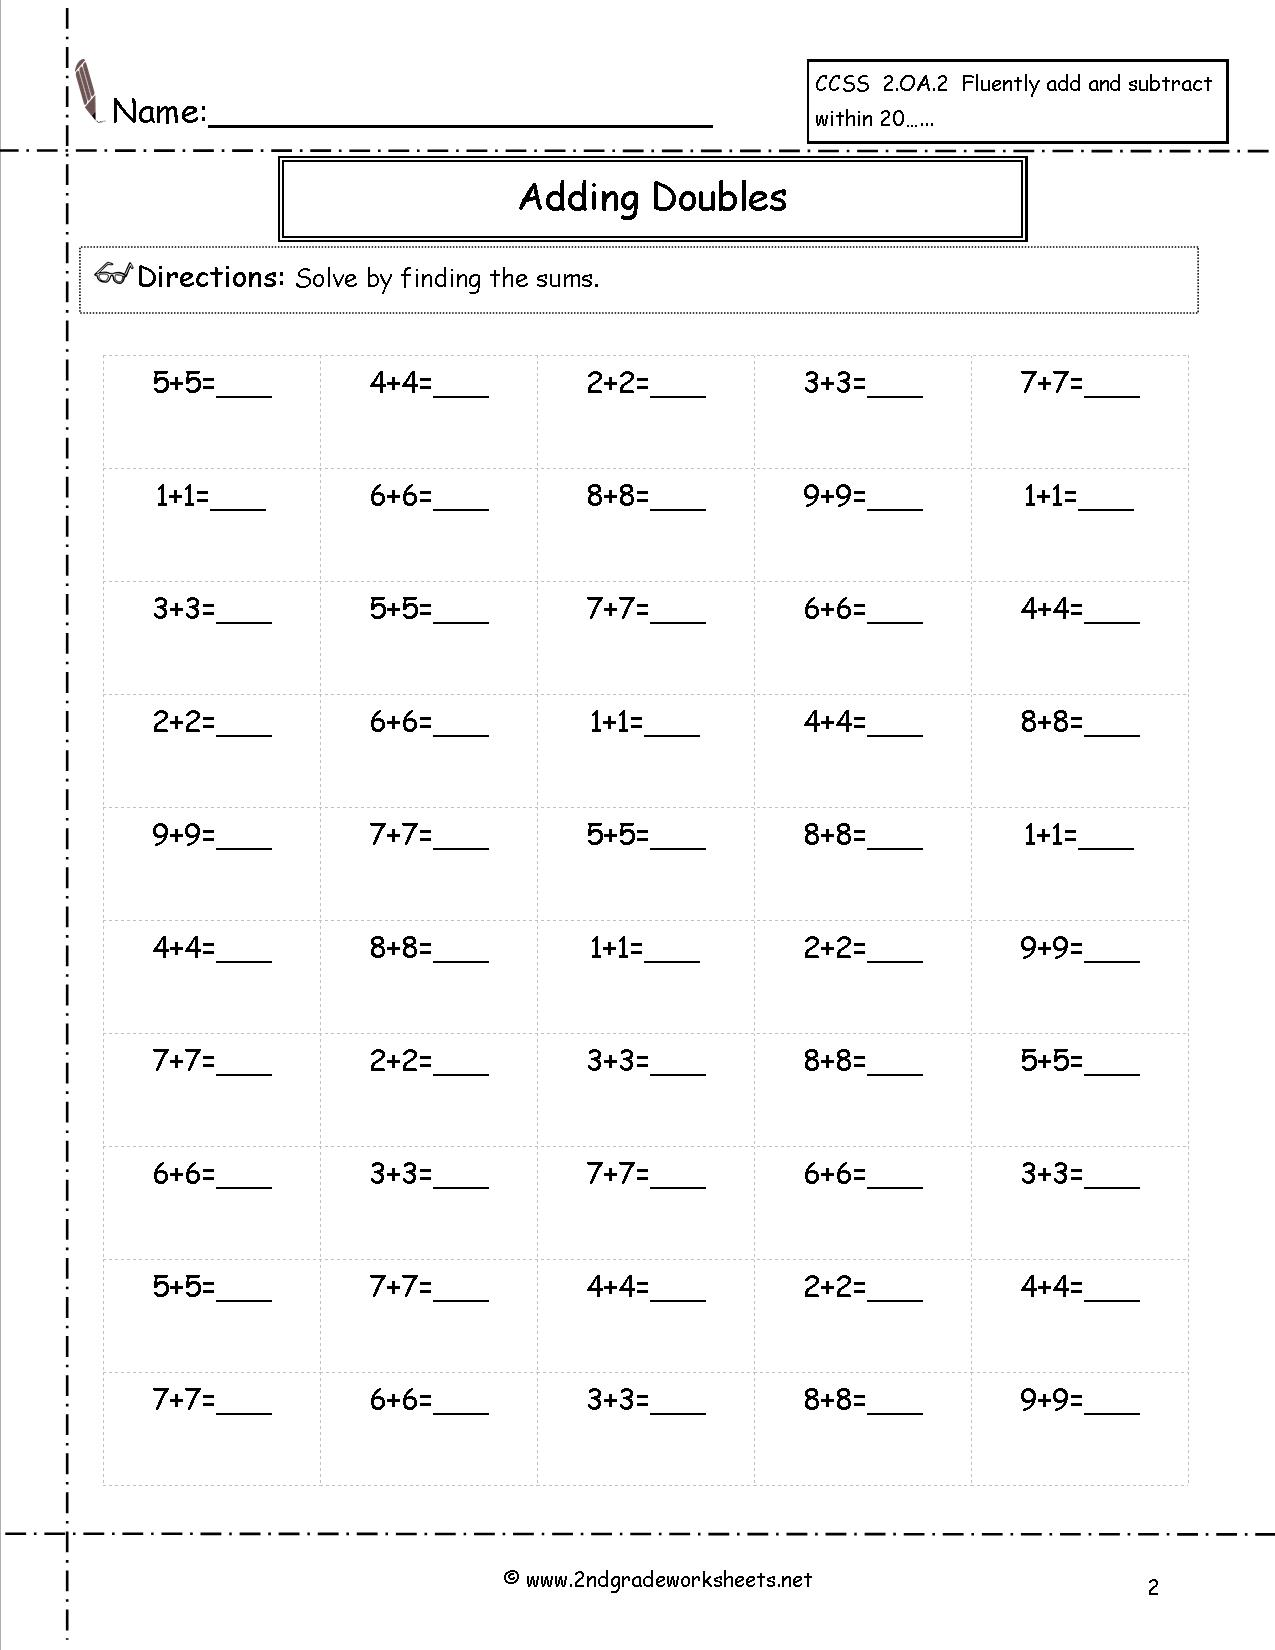 16 Best Images Of Adding Number To Ten Worksheet